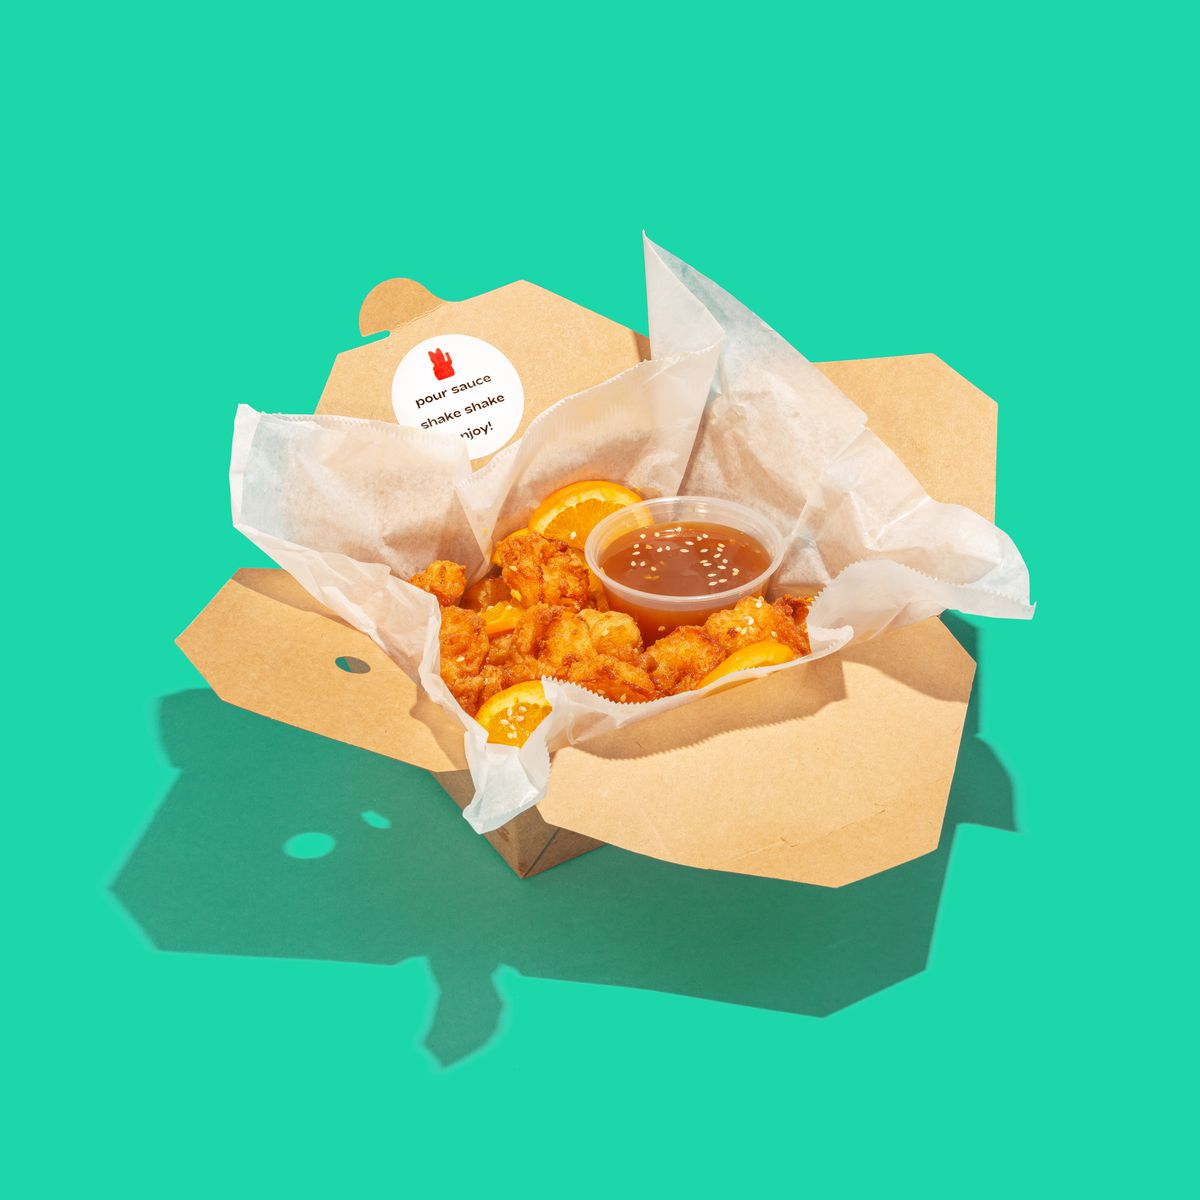 A brown box with some parchment paper inside and pieces of orange shrimp inside it